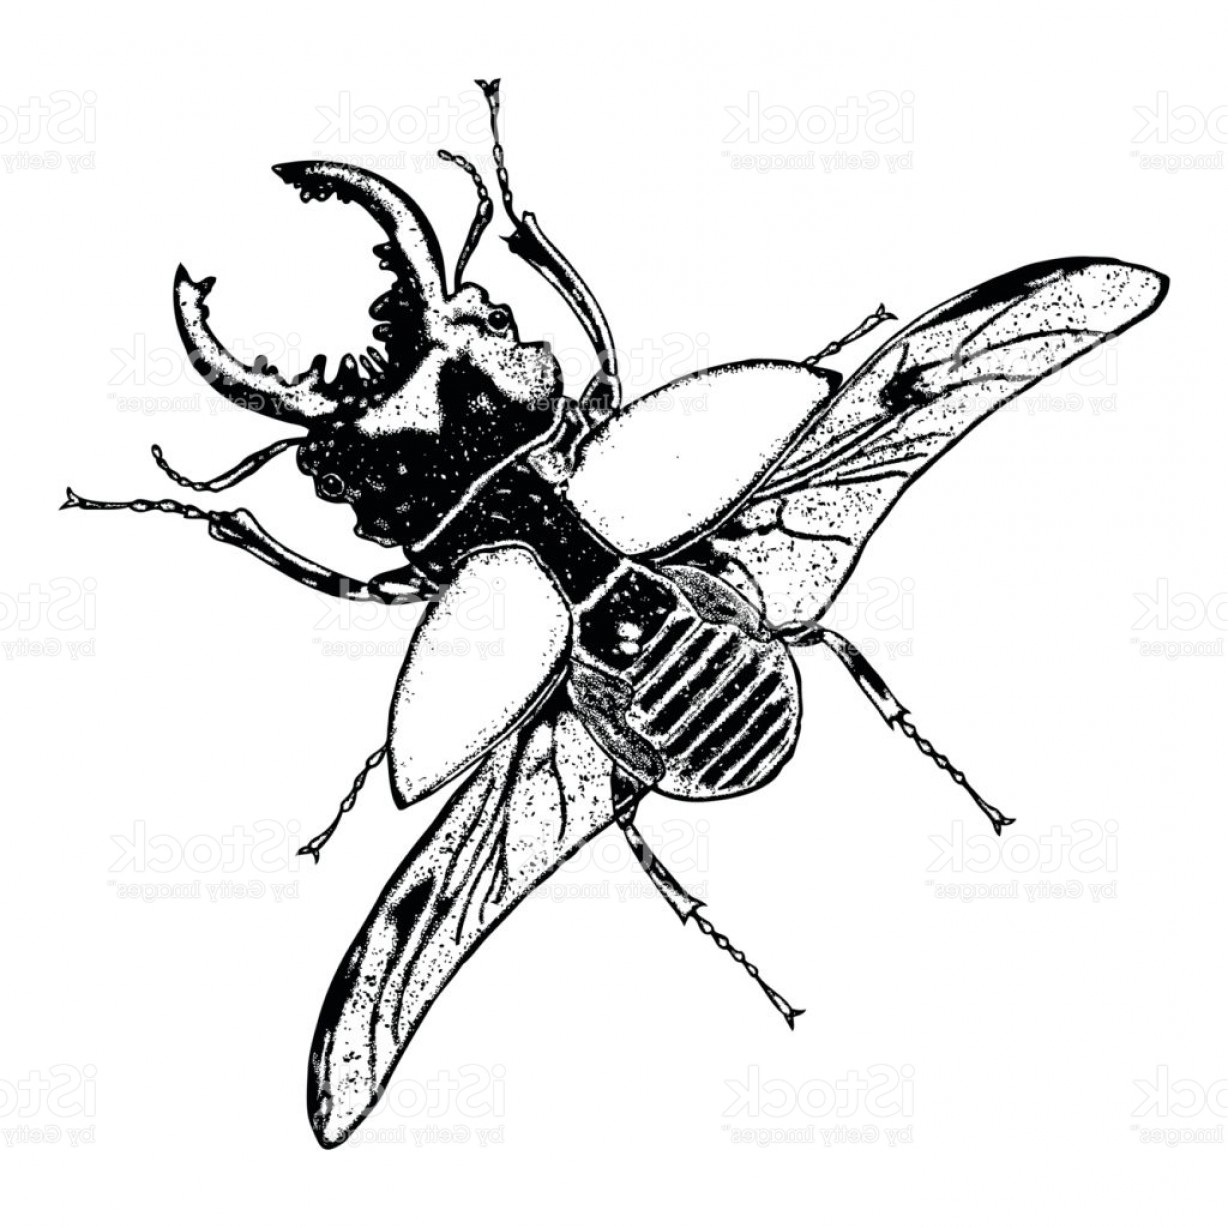 Bug Vector Art: Flying Insect Bug With Wings Scarab Beetle Vintage Old Hand Drawn Stippling And Gm